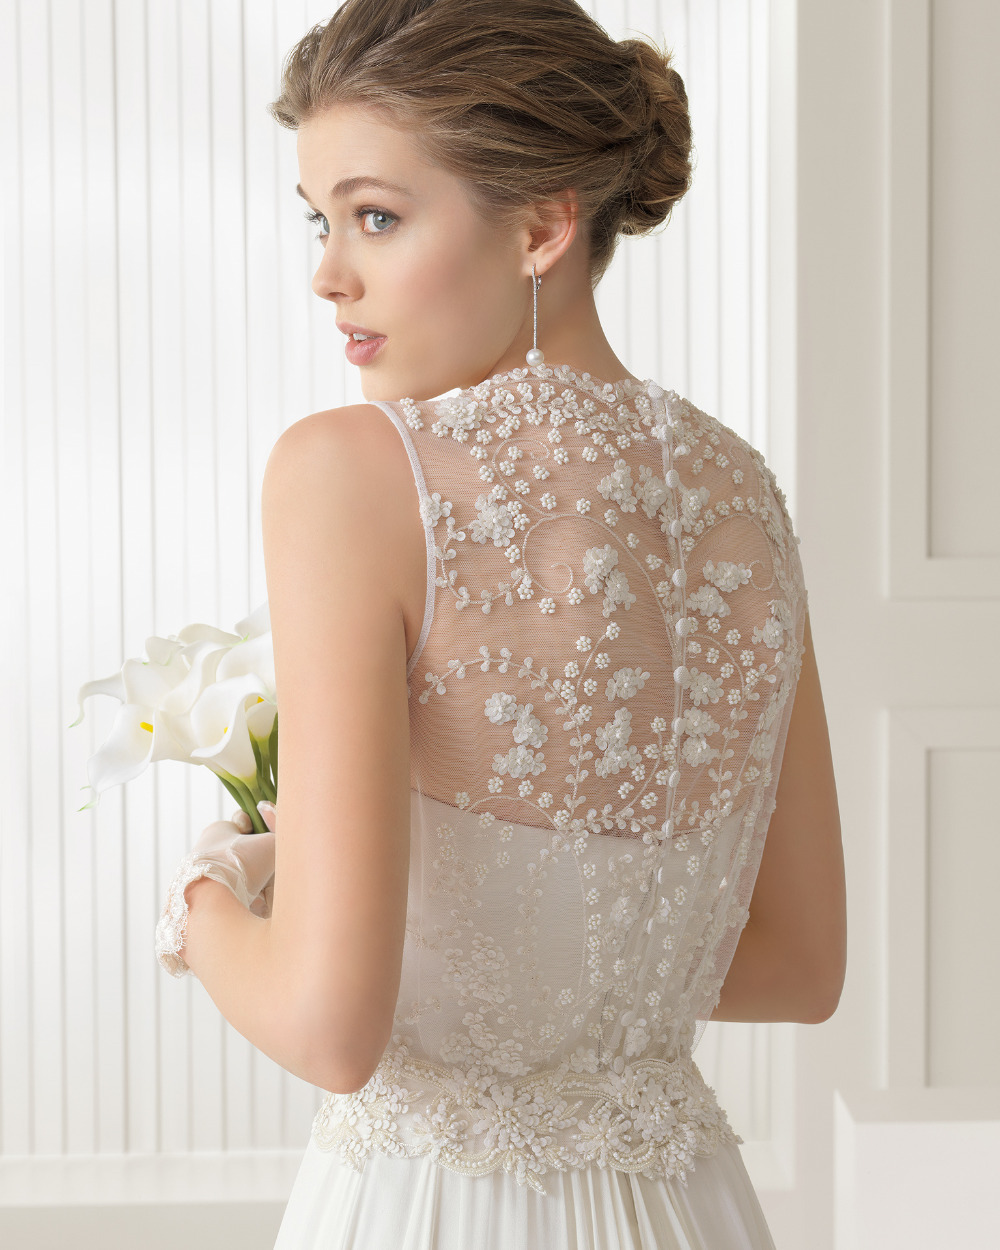 2 illusion neckline wedding dresses Watters Fall A line Bridal Gown with Illusion Neckline